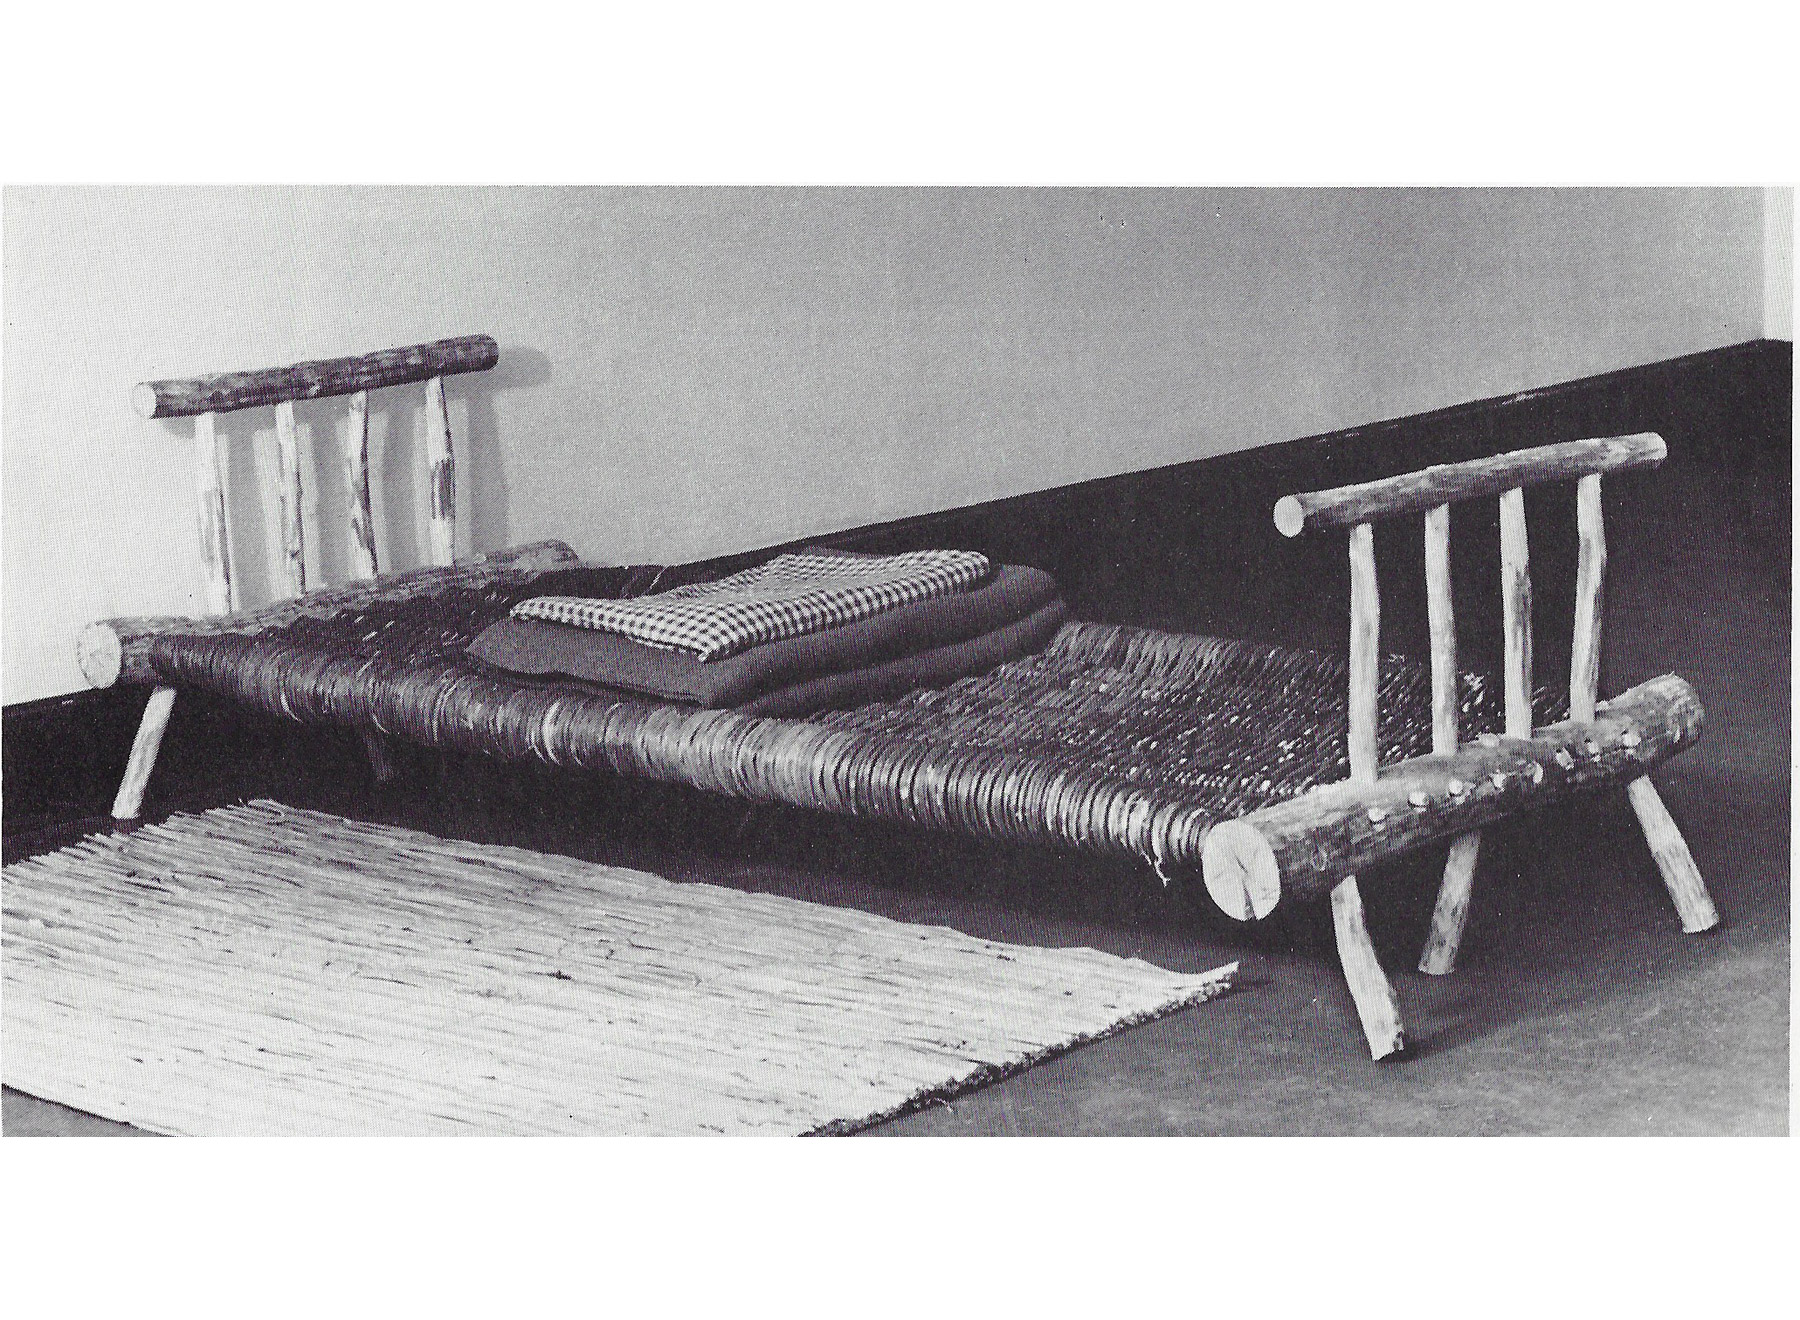 self-built furniture for refugees, manual by Hans Schwippert, 1942